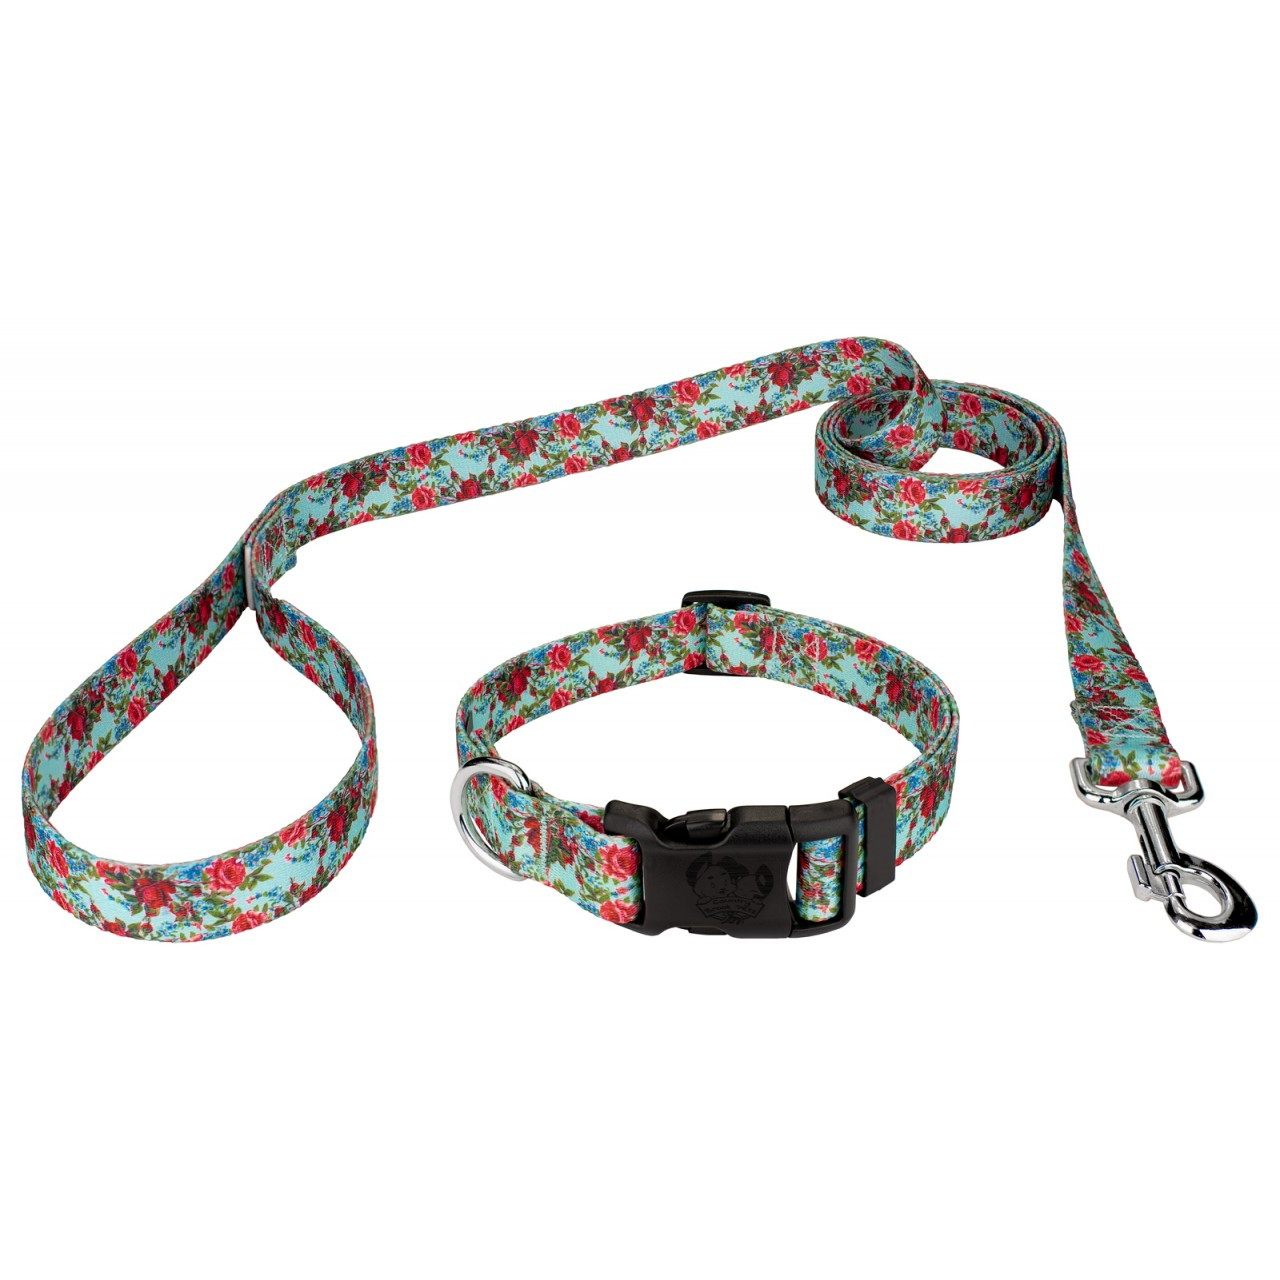 Deluxe Vintage Roses Dog Collar & Leash